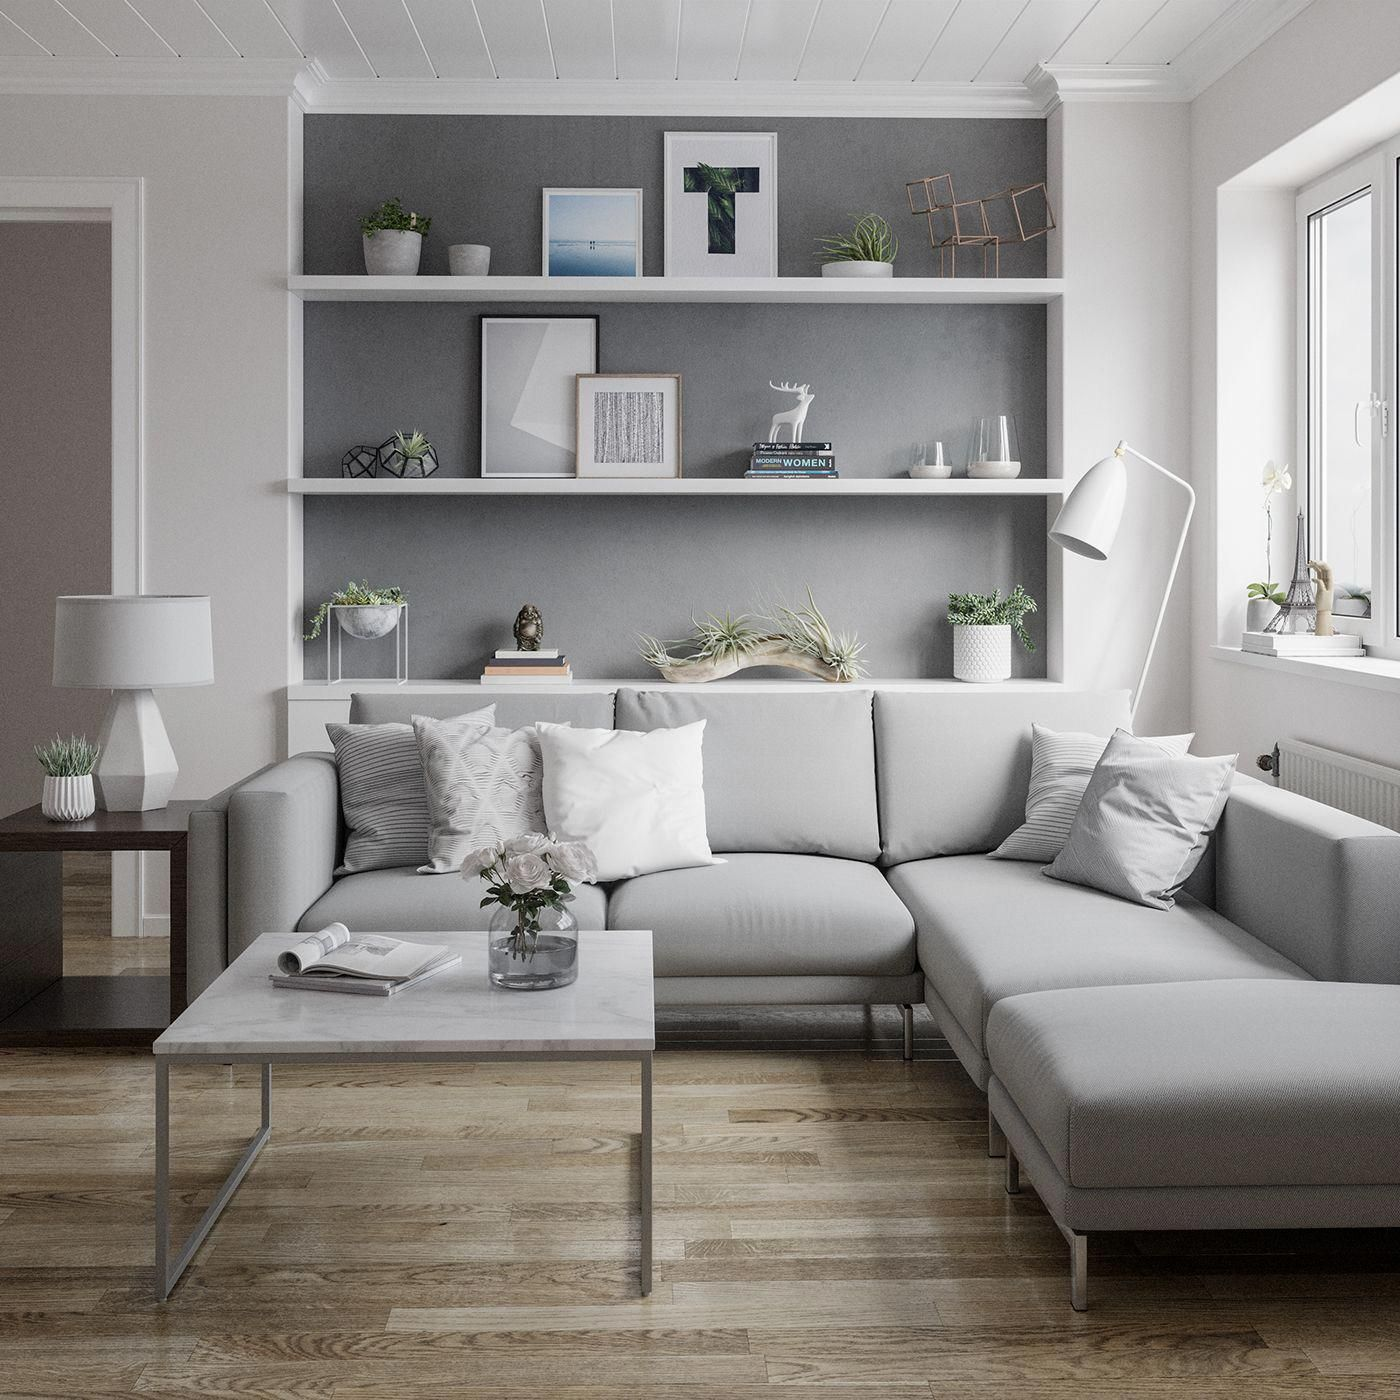 Designer Wohnzimmer Scandinavian Living Room On Behance #modernhomedecorretro ...